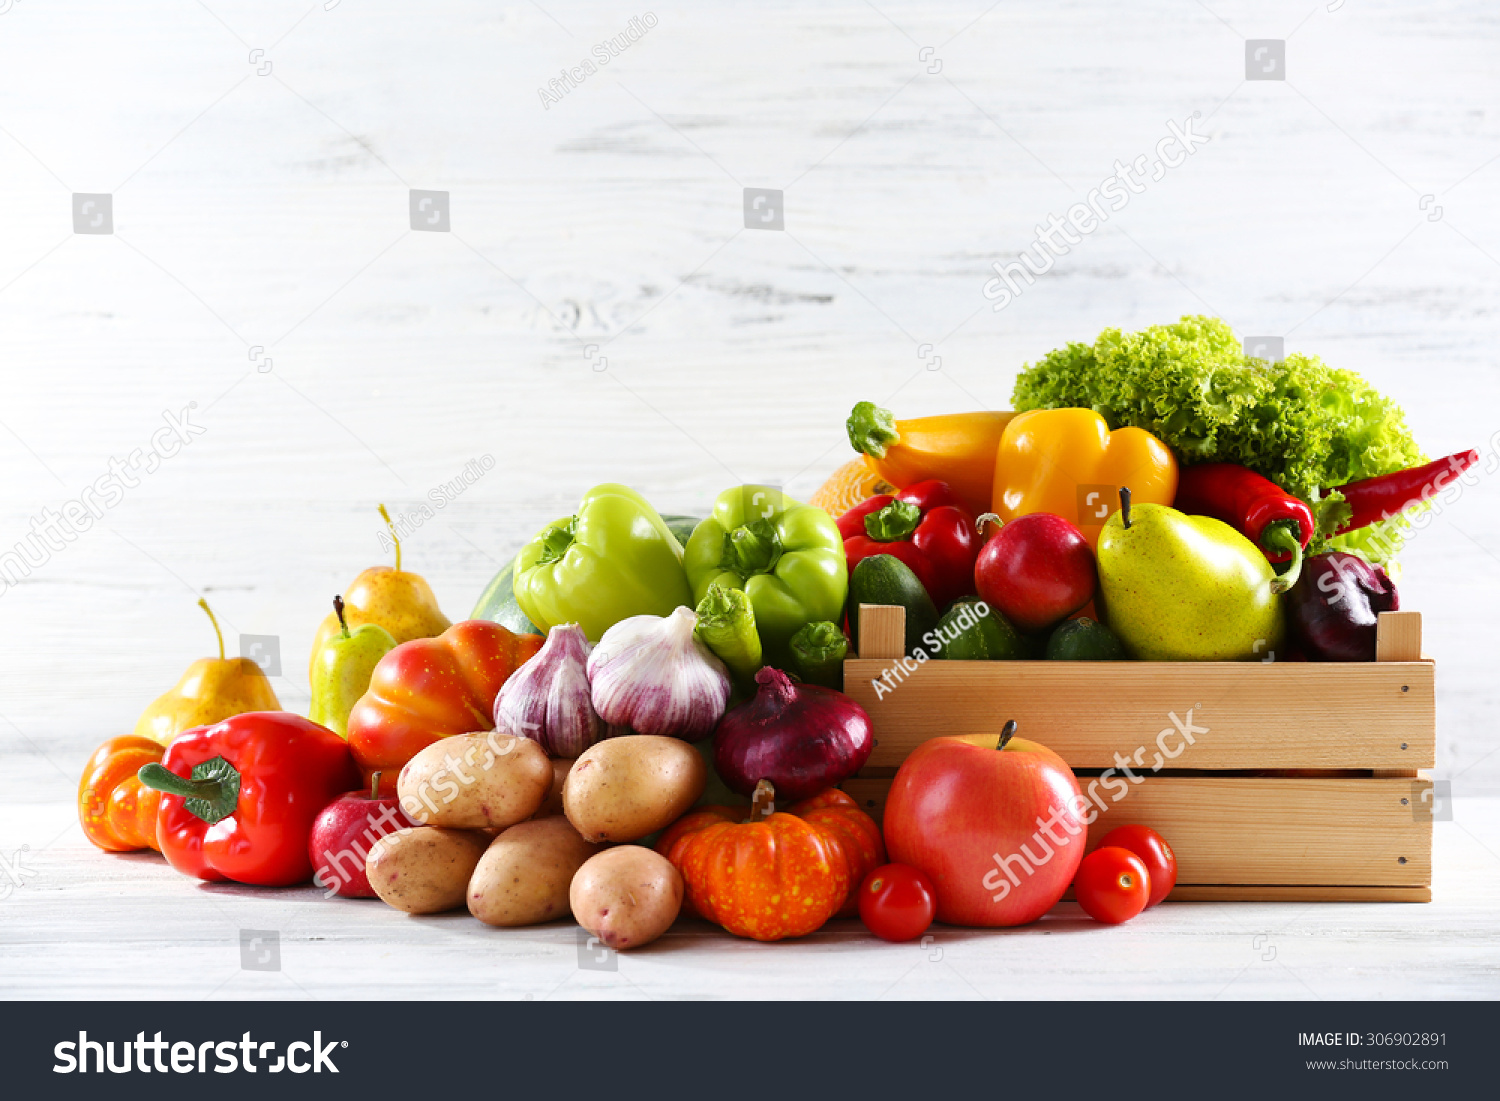 Heap Fresh Fruits Vegetables On Wooden Stock Photo ...